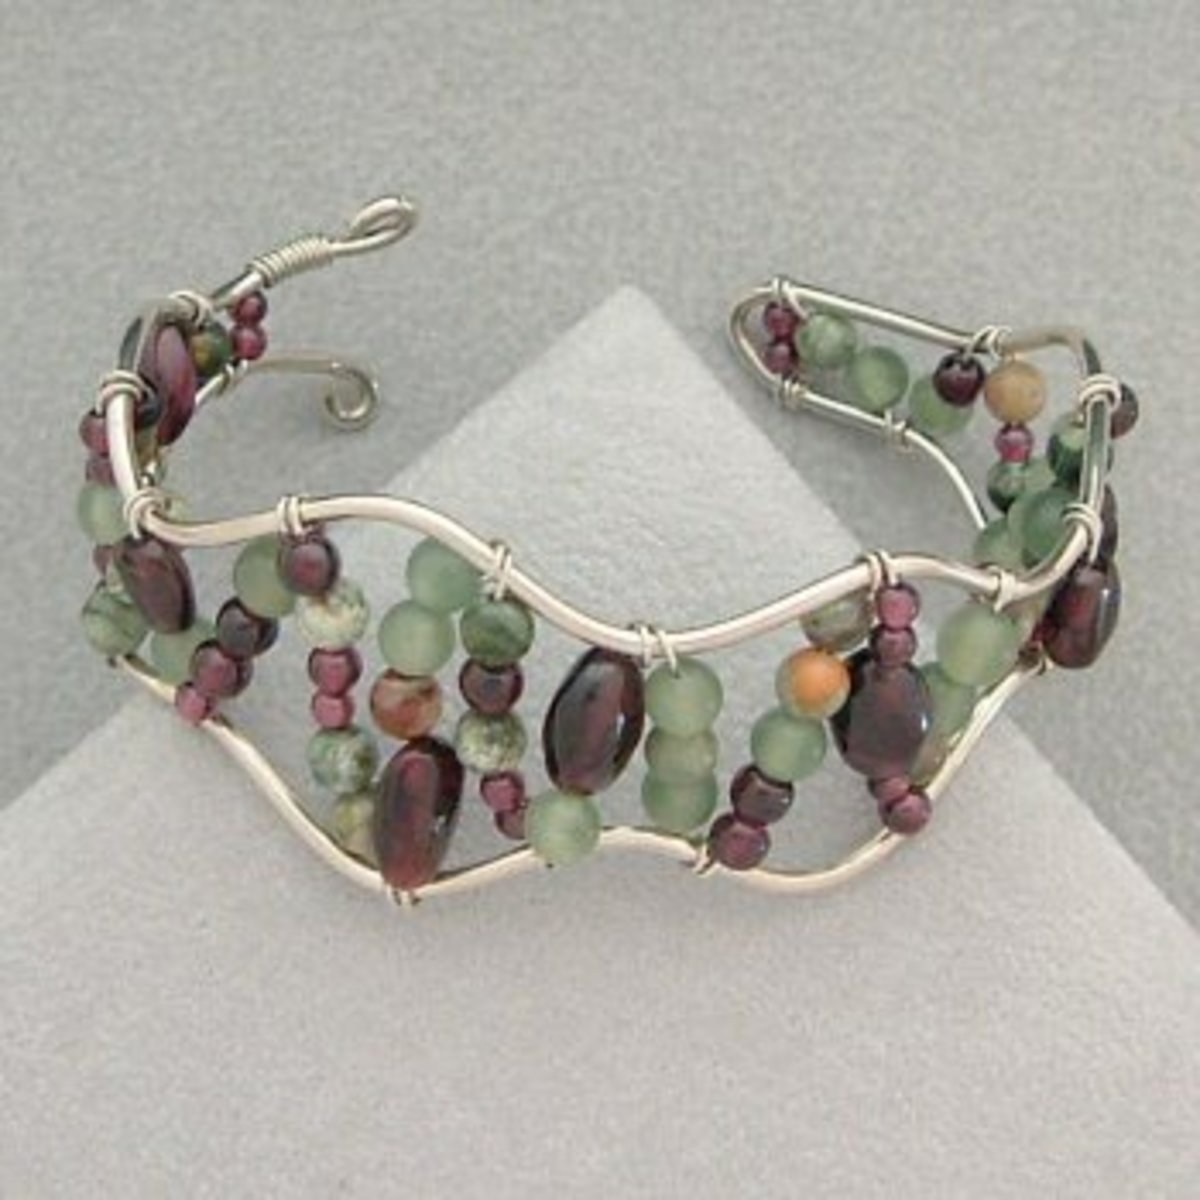 One of my bead and wire bracelets